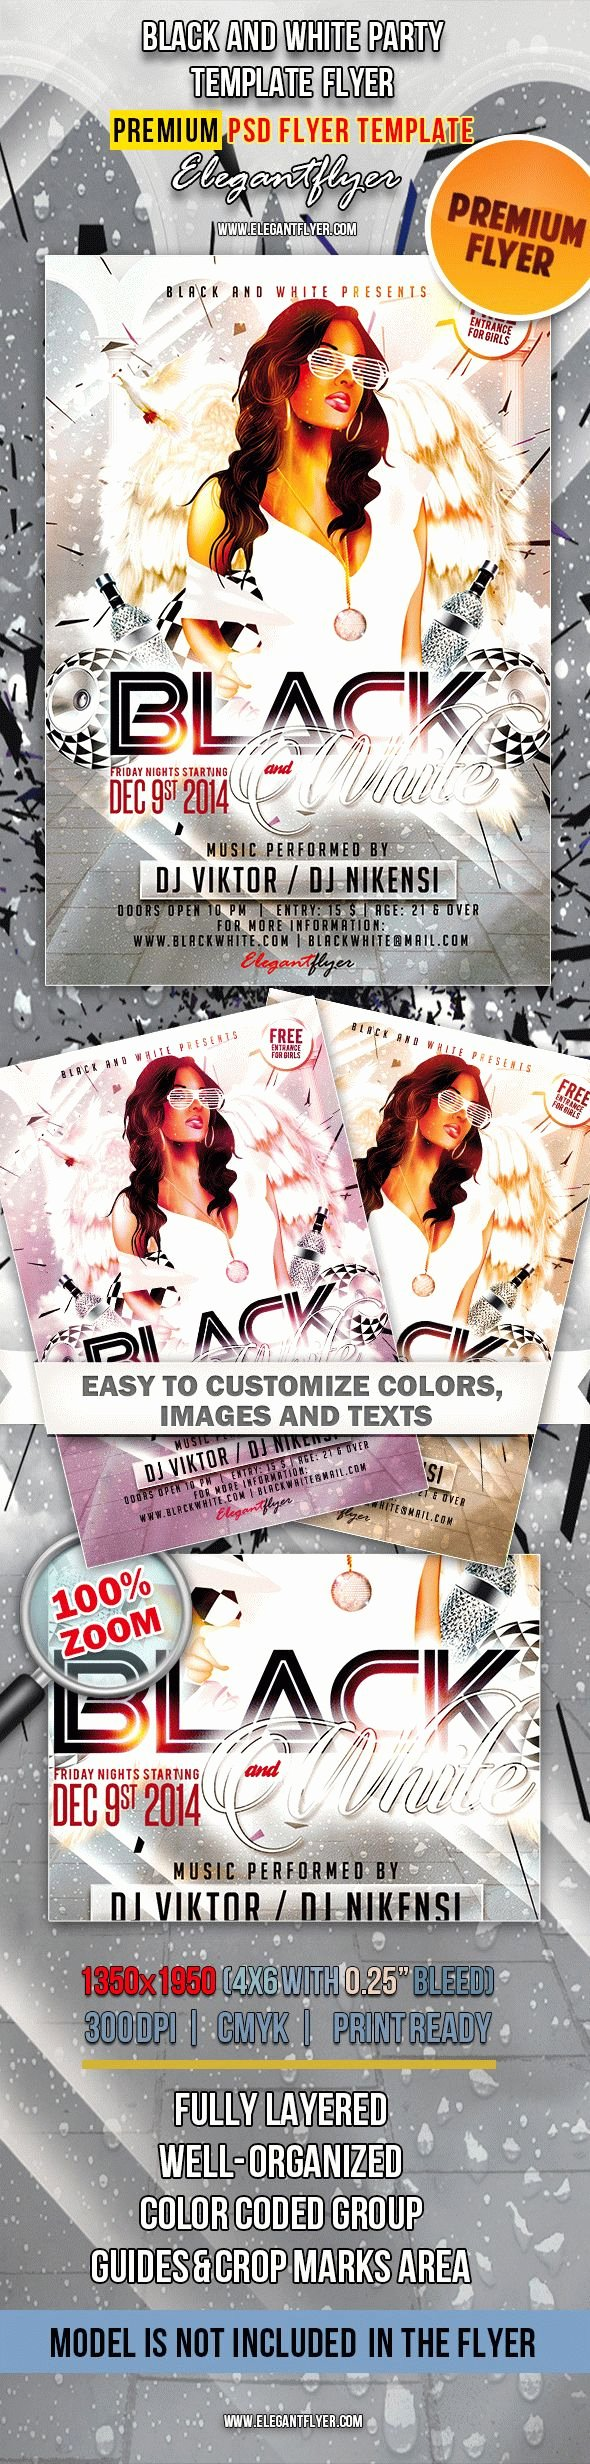 Black and White Flyer Templates Awesome Black and White Party Flyer In Psd – by Elegantflyer